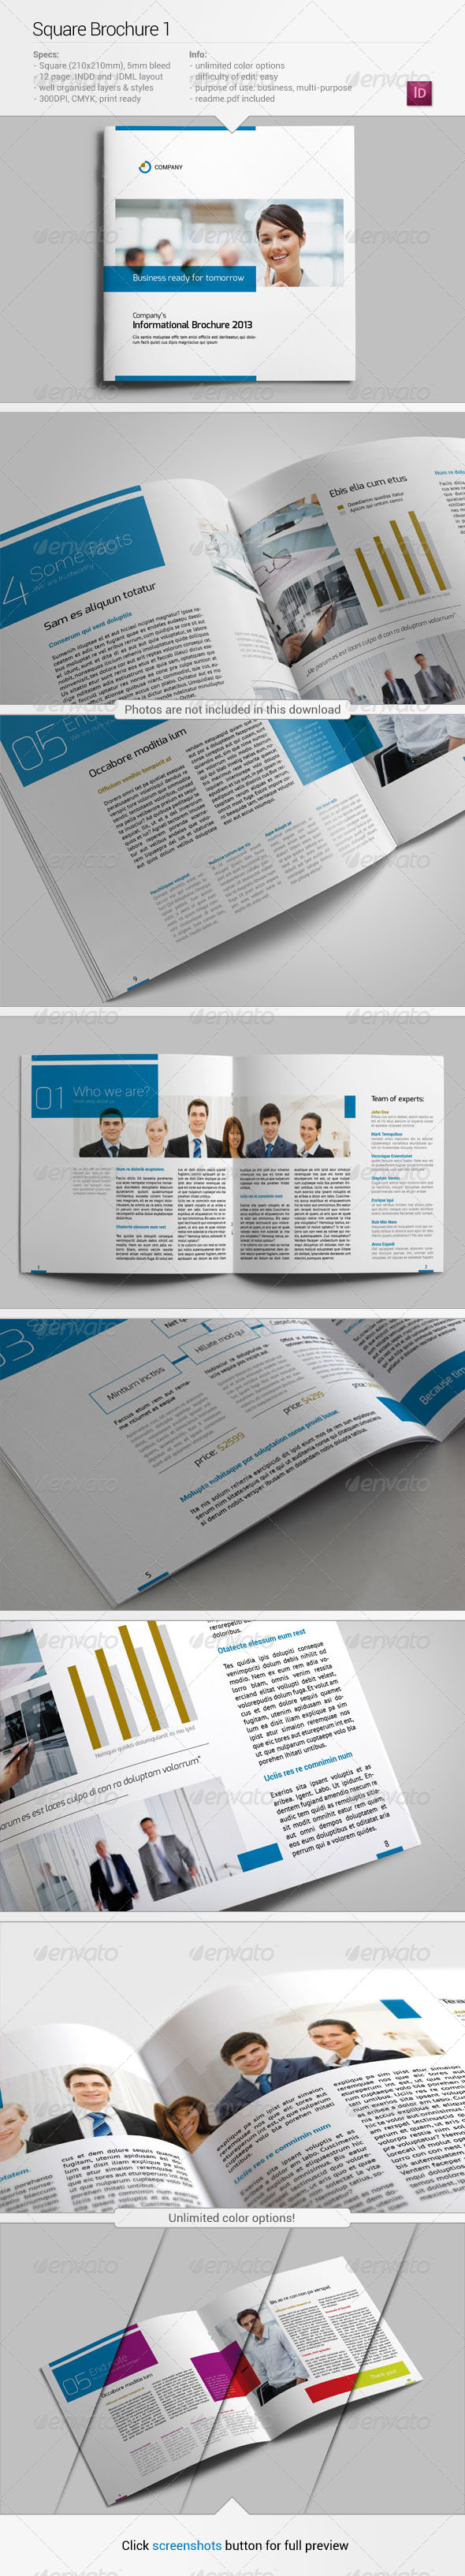 Square Brochure 1 - Corporate Brochures